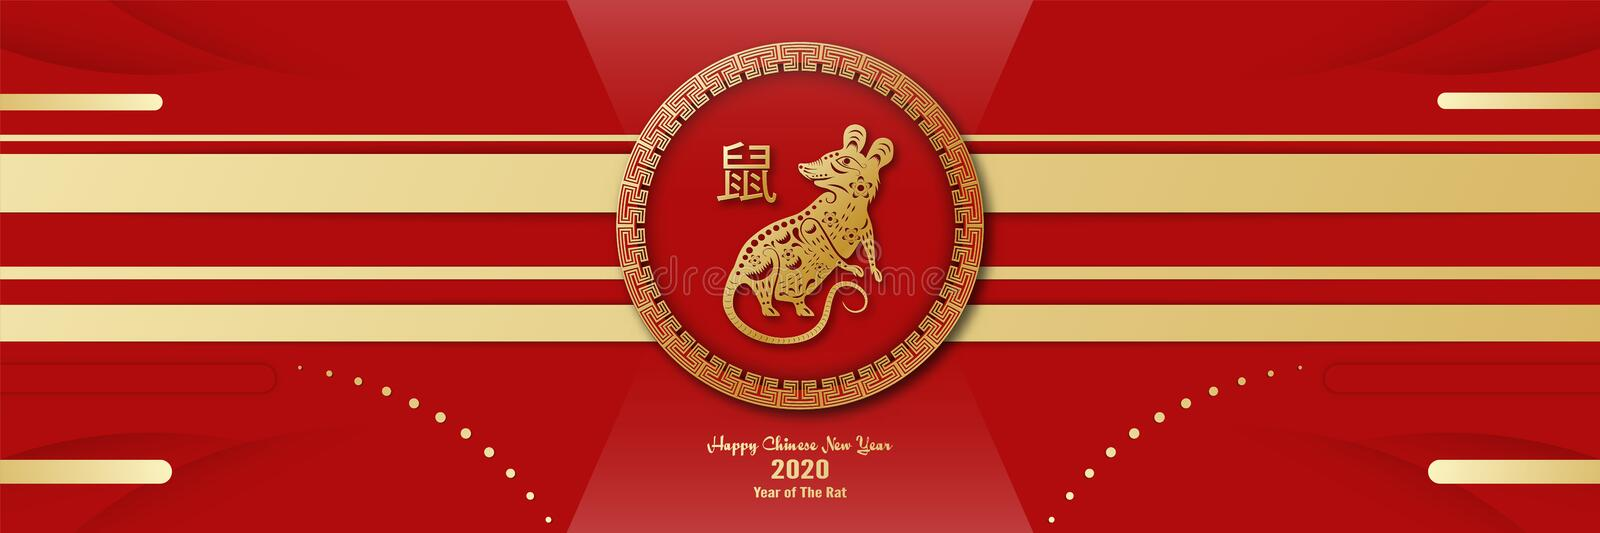 Happy Chinese new year 2020, year of the rat. Template design for cover book, invitation, poster, flyer, premium packaging. Vector vector illustration